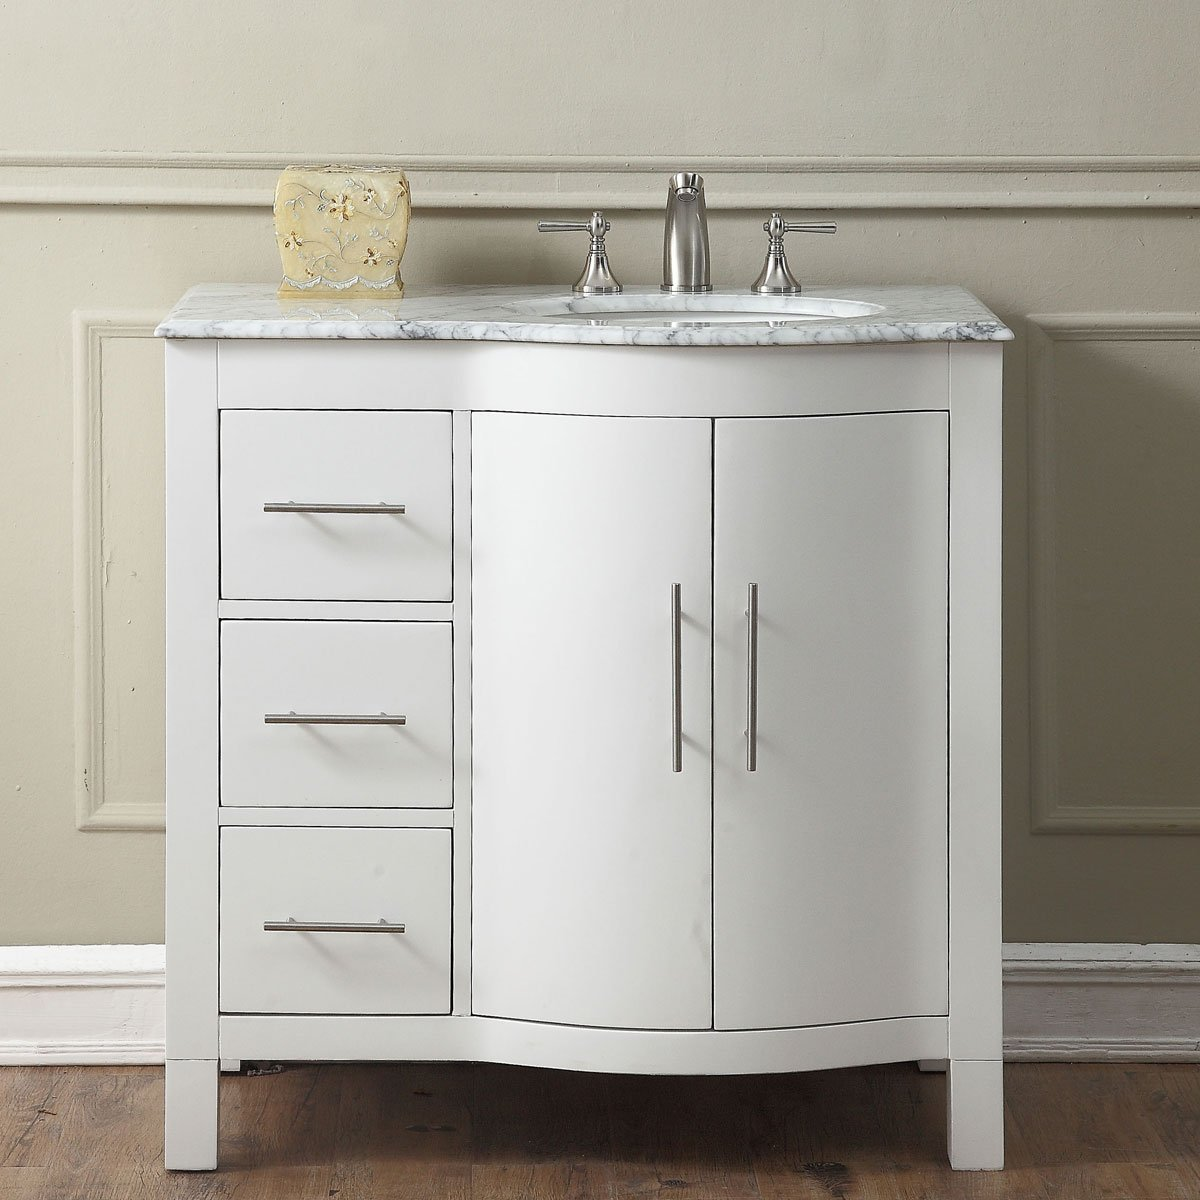 36 inch single sink contemporary bathroom vanity cabinet in white finish carrara white marble. Black Bedroom Furniture Sets. Home Design Ideas